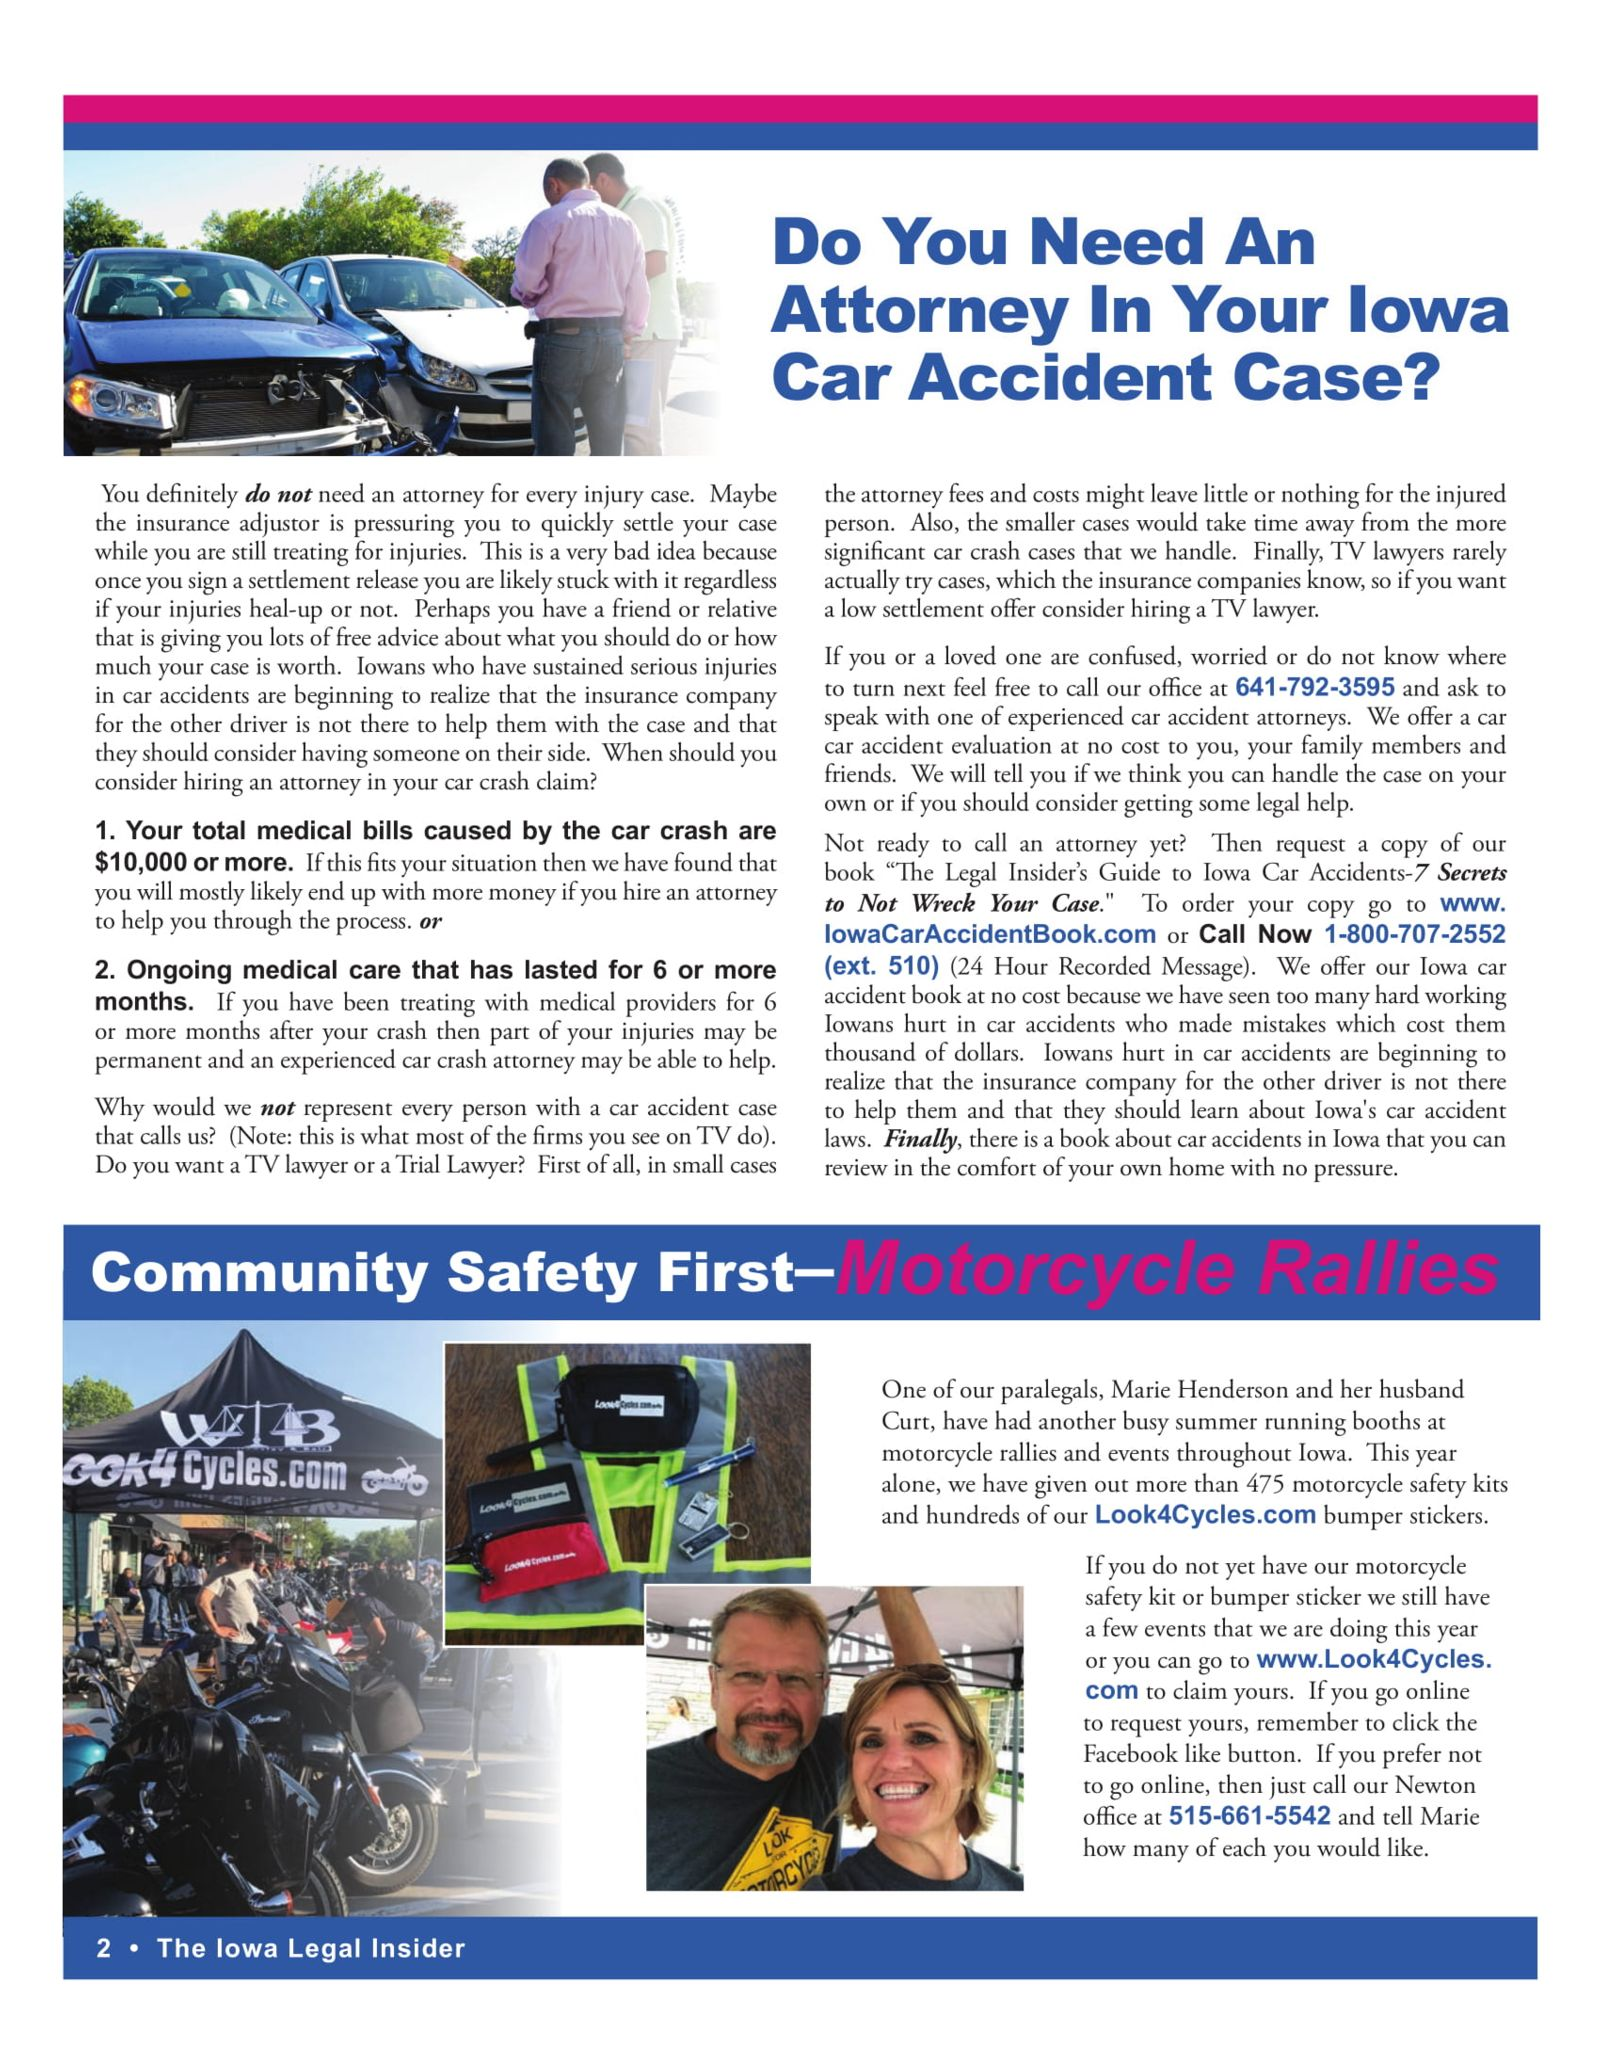 iowa legal insider Attorney for car accident case